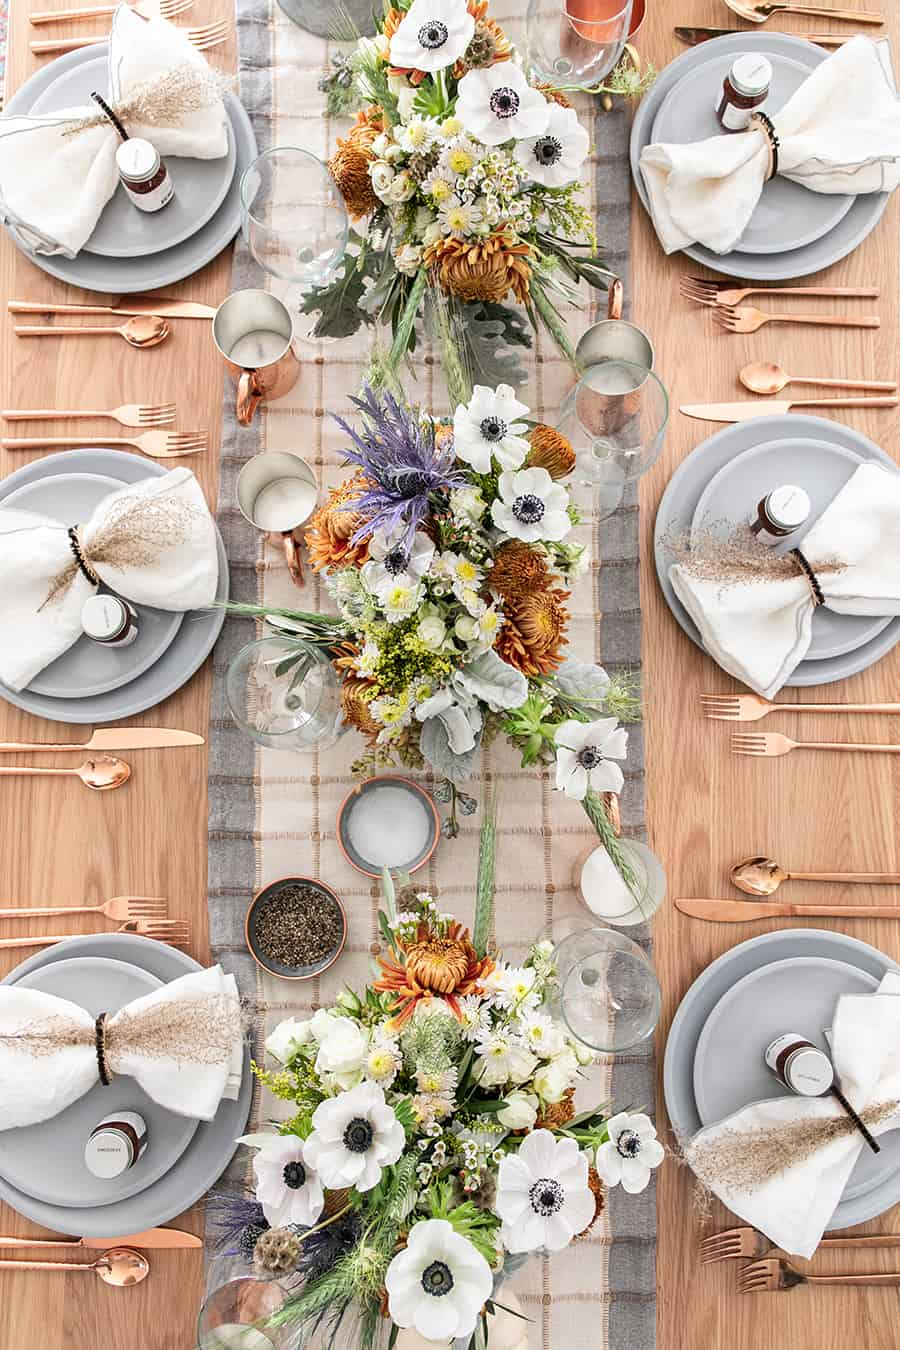 A rustic and modern tablescape with flowers, table runner, wine glasses, copper silverware.